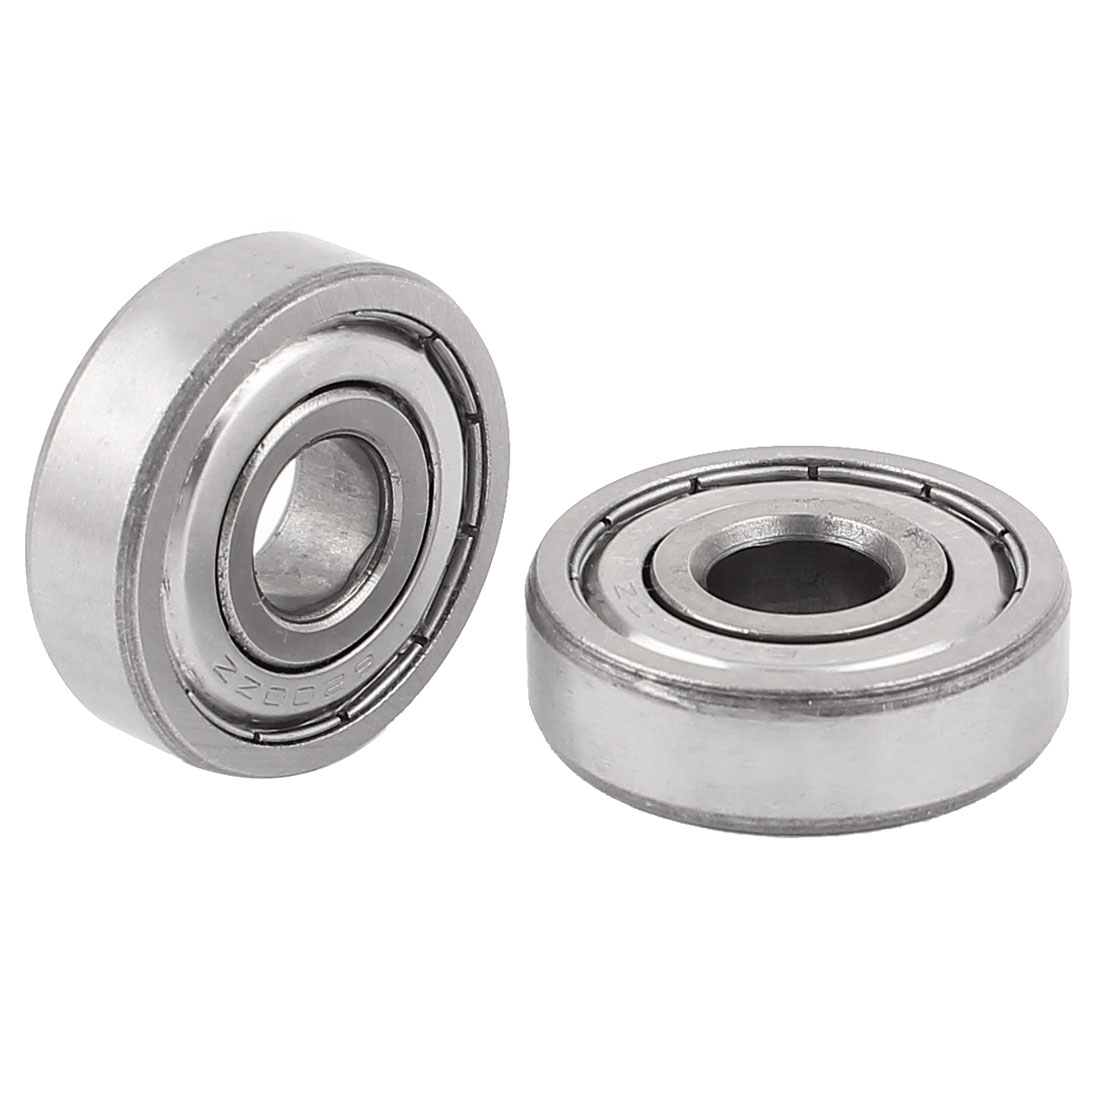 6200 Deep Groove Ball Wheel Bearings Machine Replacement Silver Tone 2pcs